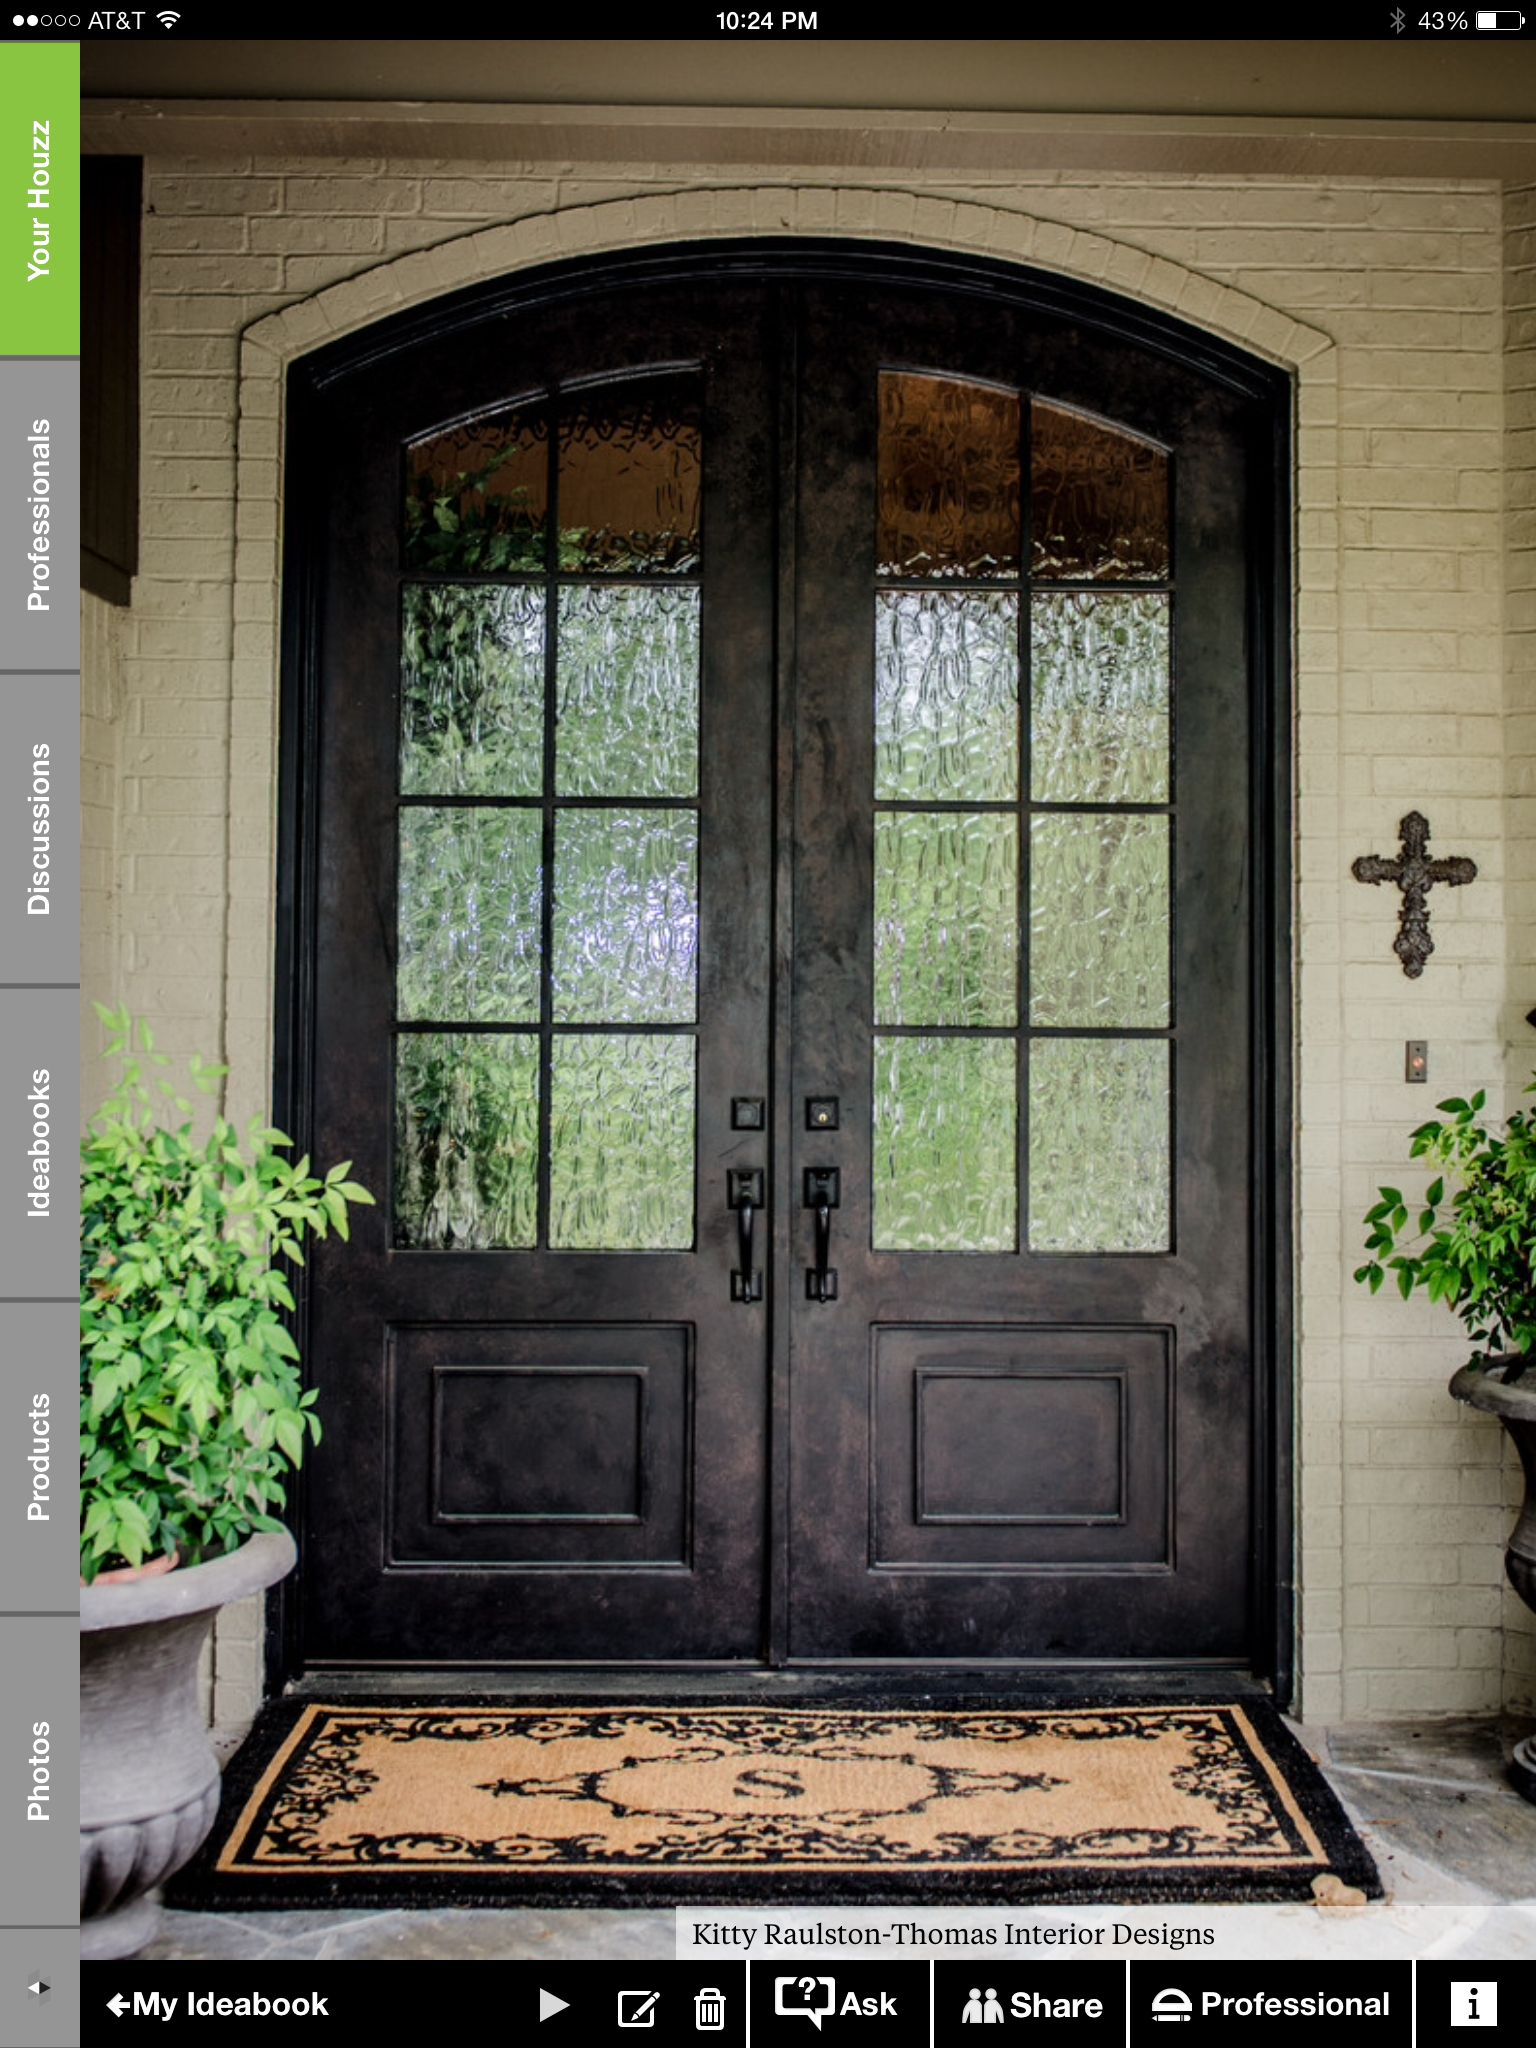 7 Amazing Black Front Door Ideas Frontdoor Frontdoorideas Blackfrontdoor